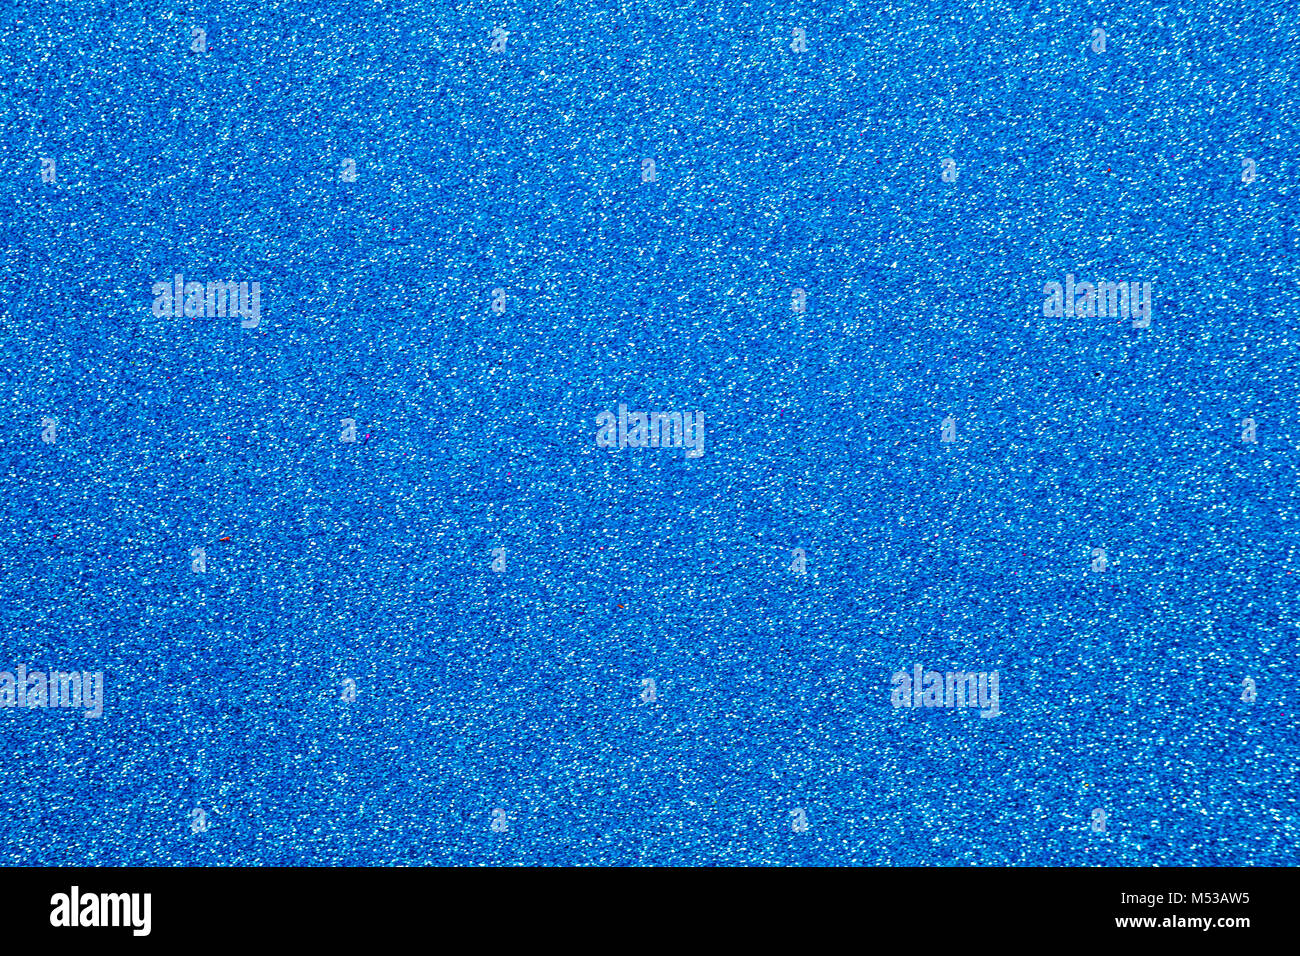 blue glitter texture christmas abstract background - Stock Image